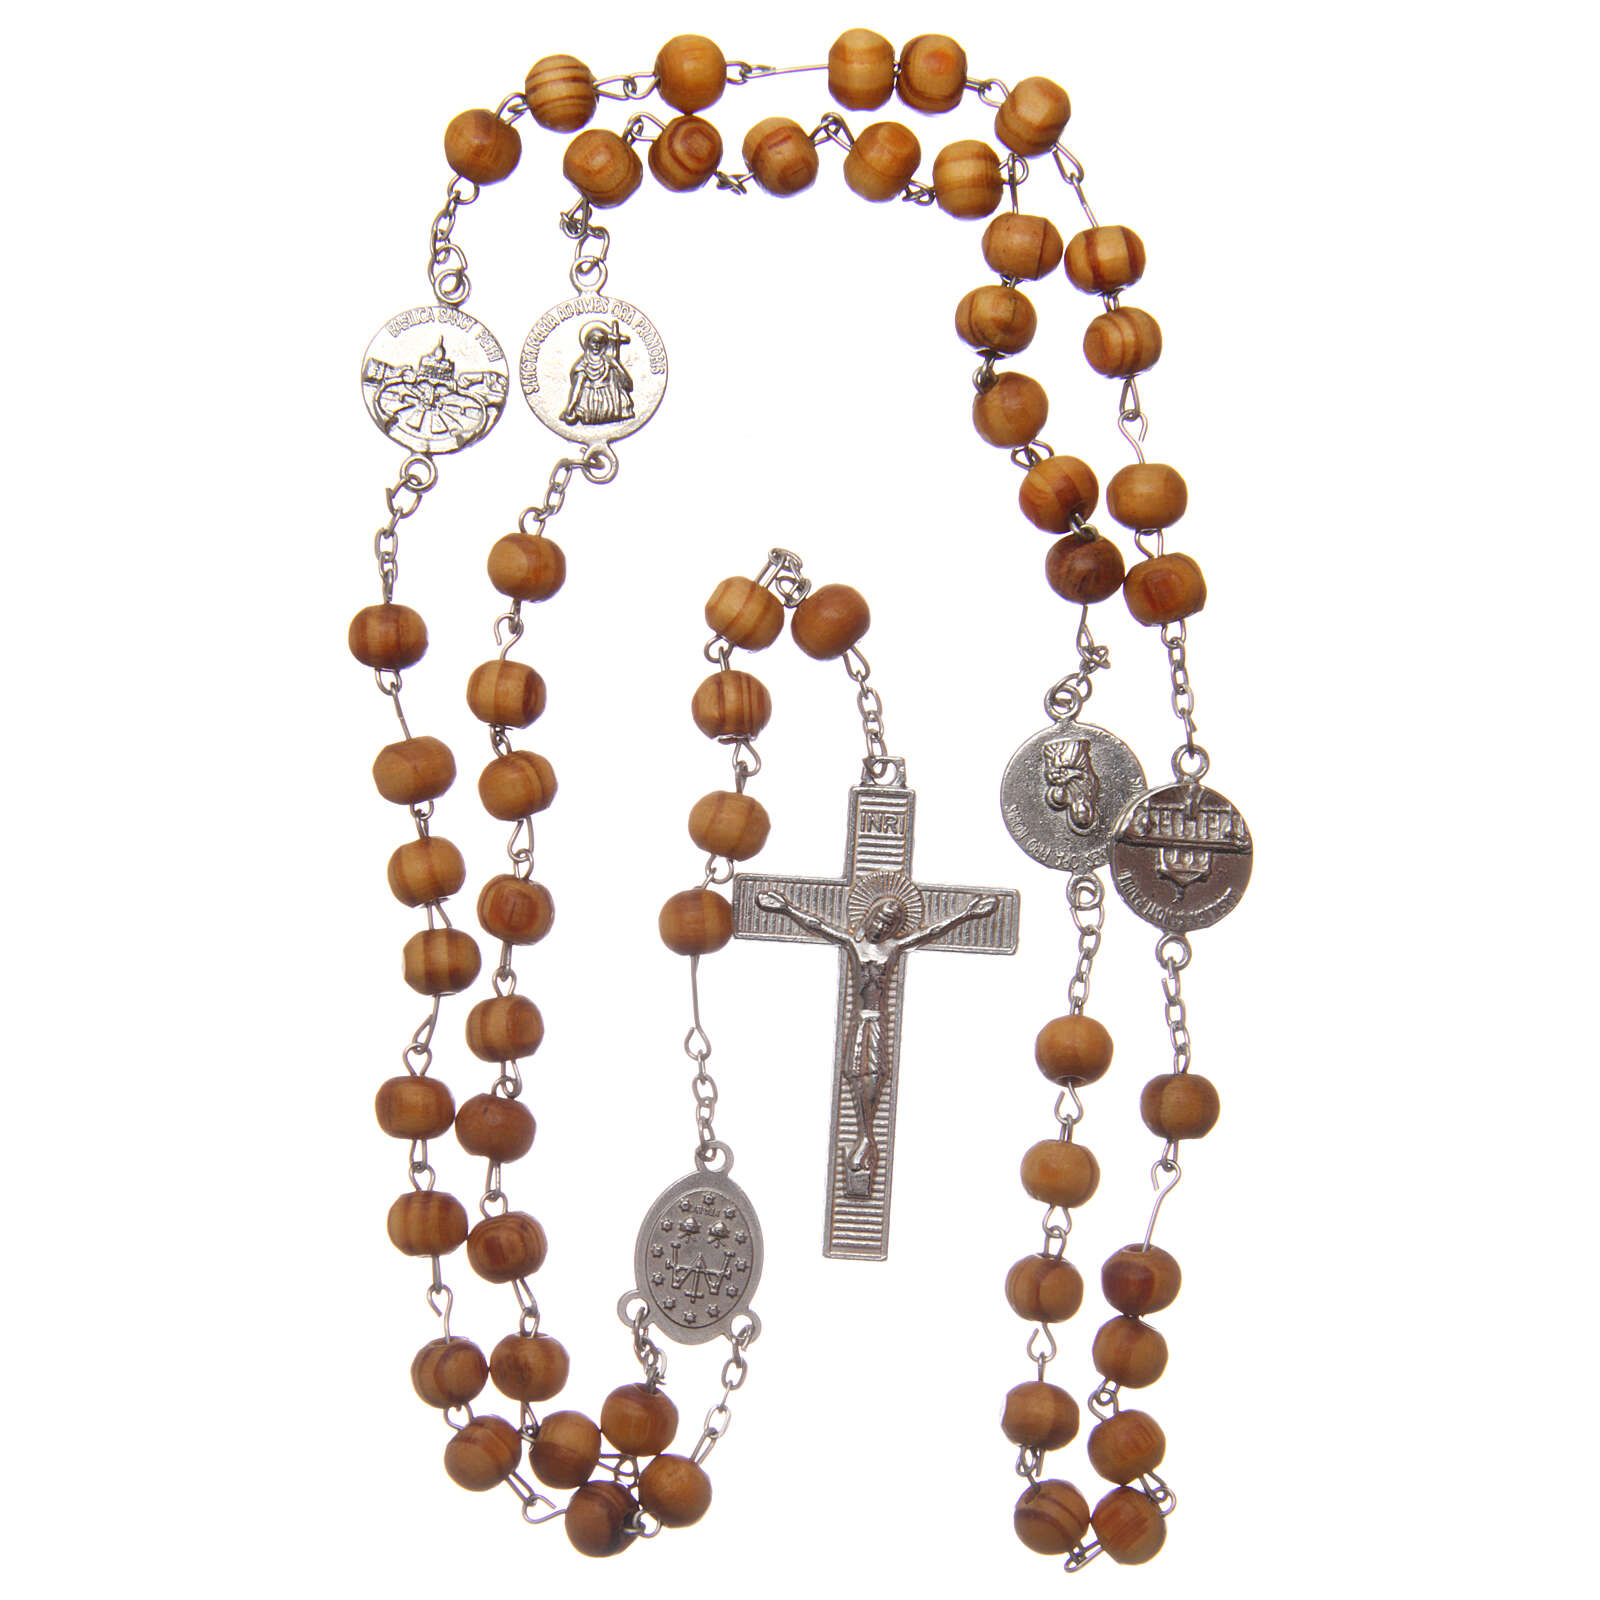 Wearable rosary olive wood beads 8 mm avec medals 4